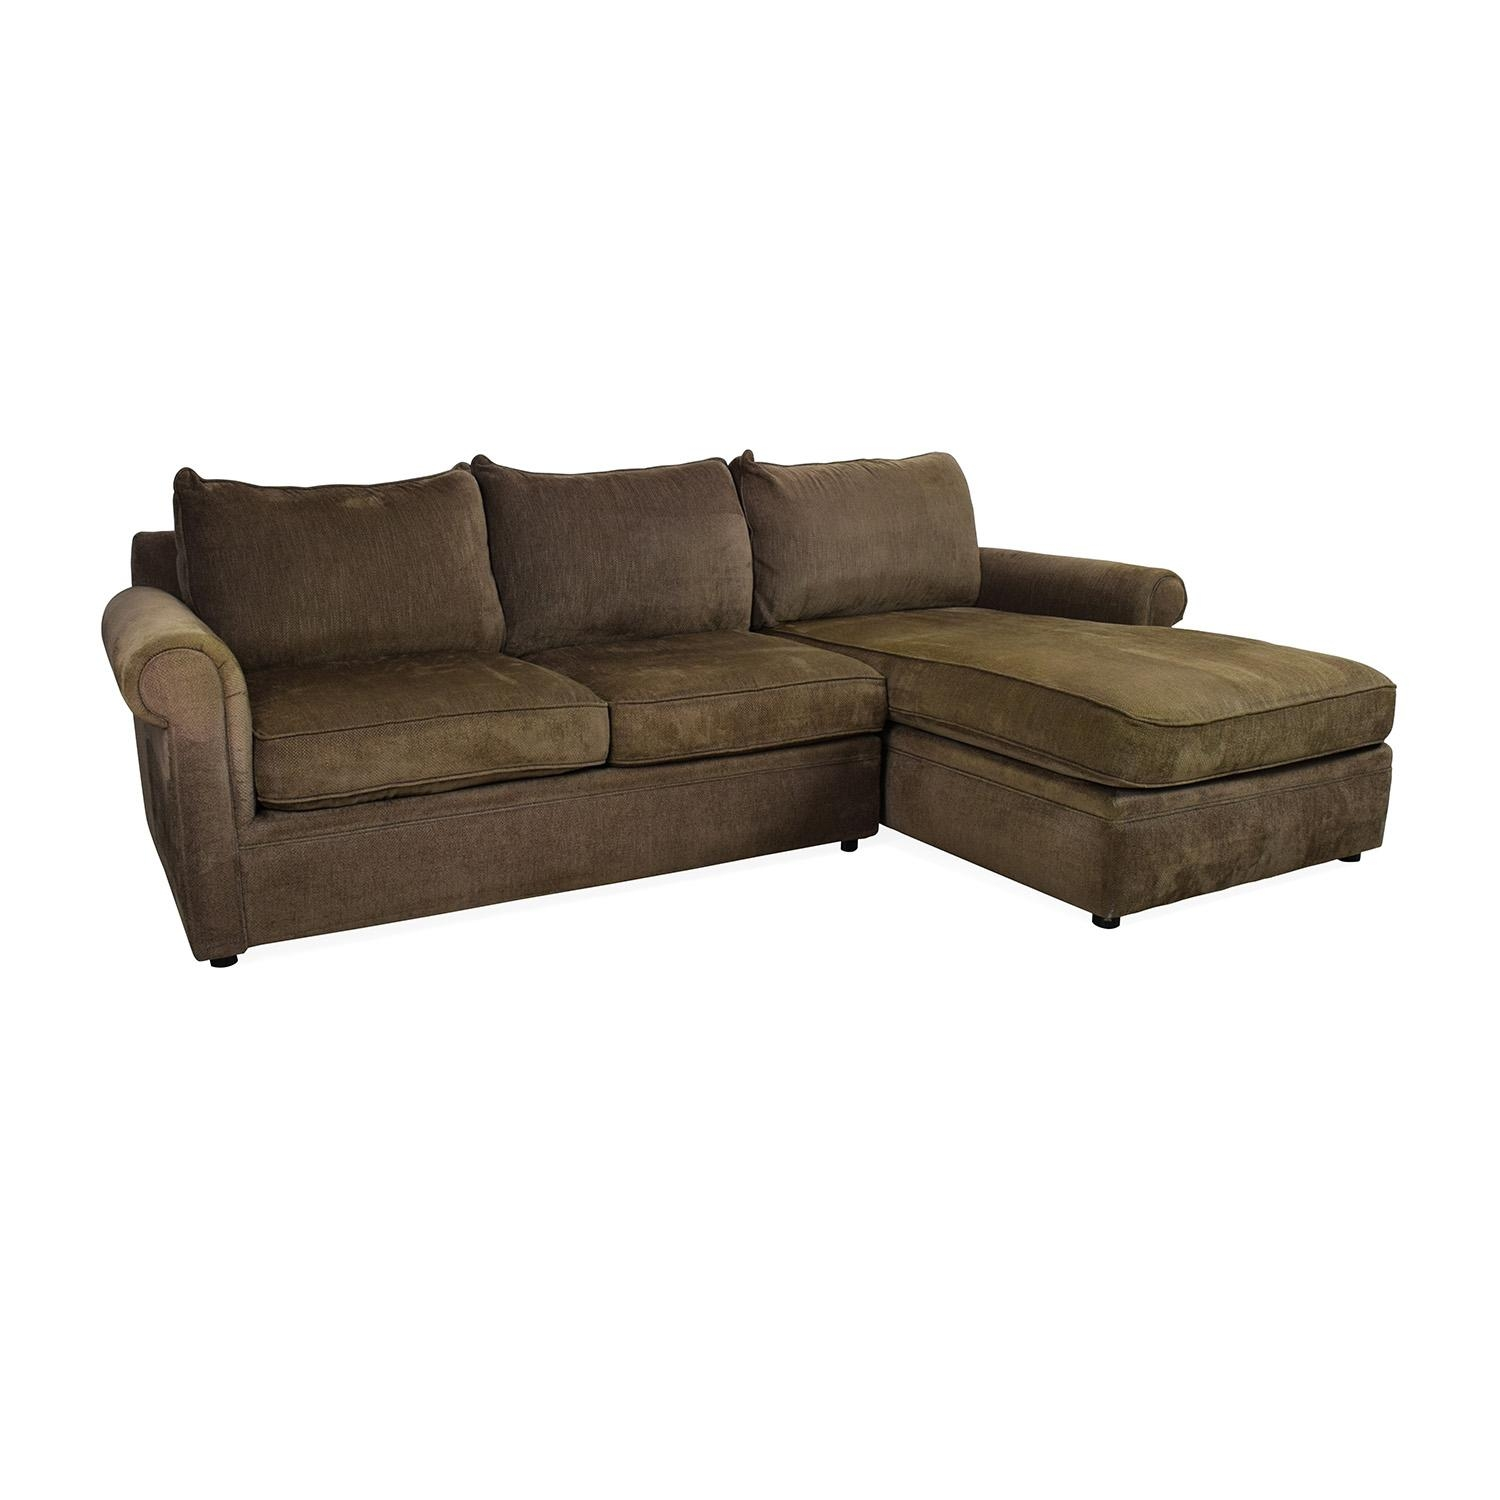 83% Off – Bloomingdales Bloomingdale's Sectional / Sofas Inside Bloomingdales Sofas (Photo 11 of 20)